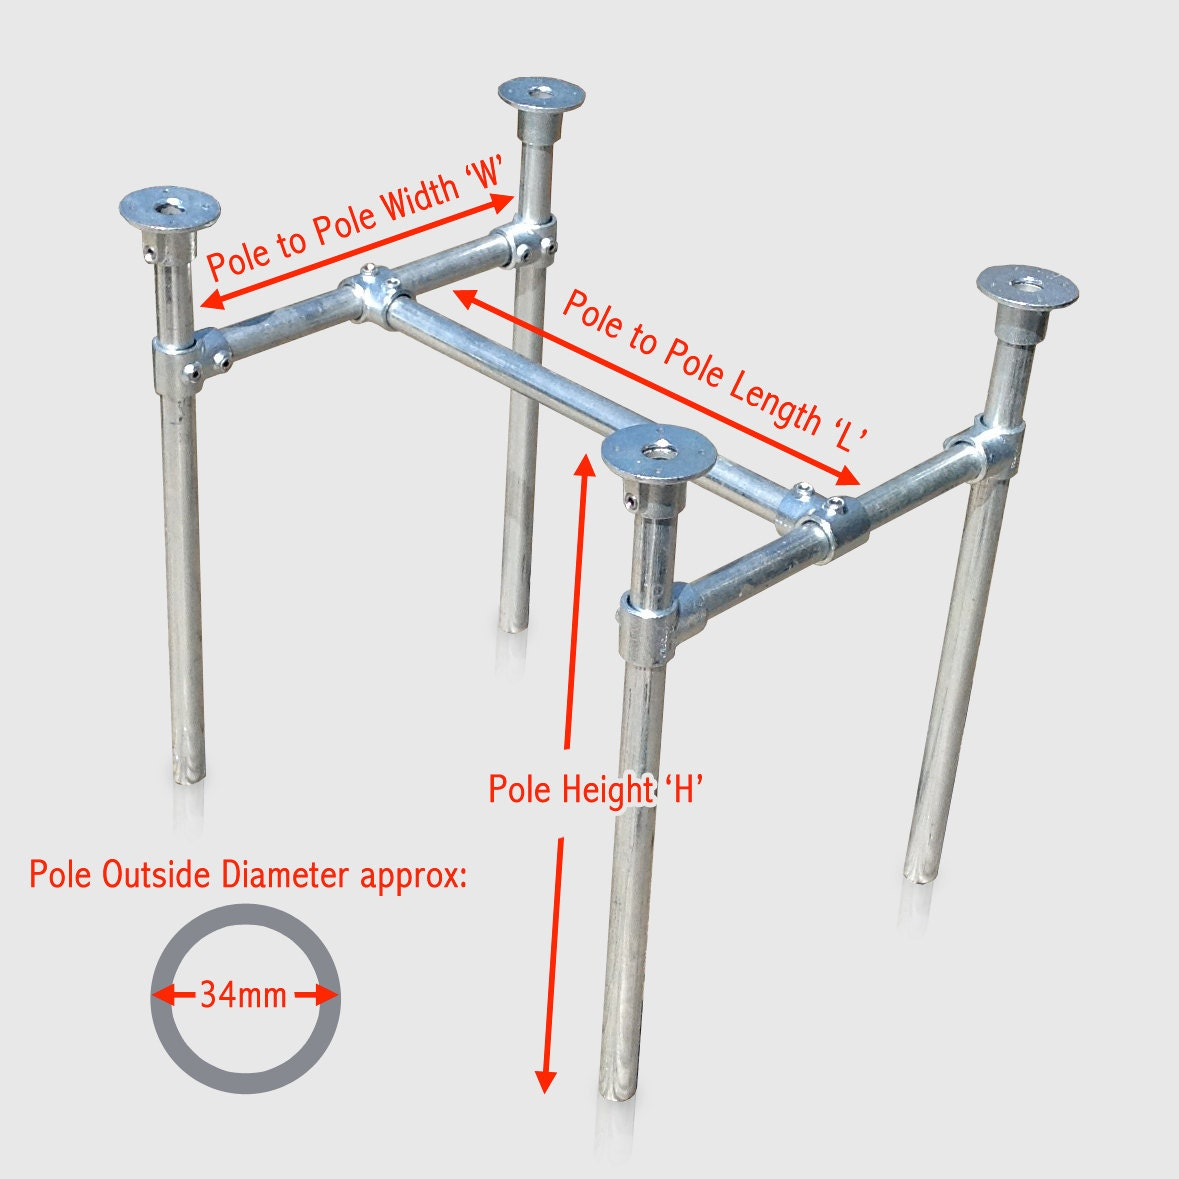 Table Leg Frame Made To Measure in Metal Scaffold by  : ilfullxfull813370530hiwo from www.etsy.com size 1179 x 1179 jpeg 143kB